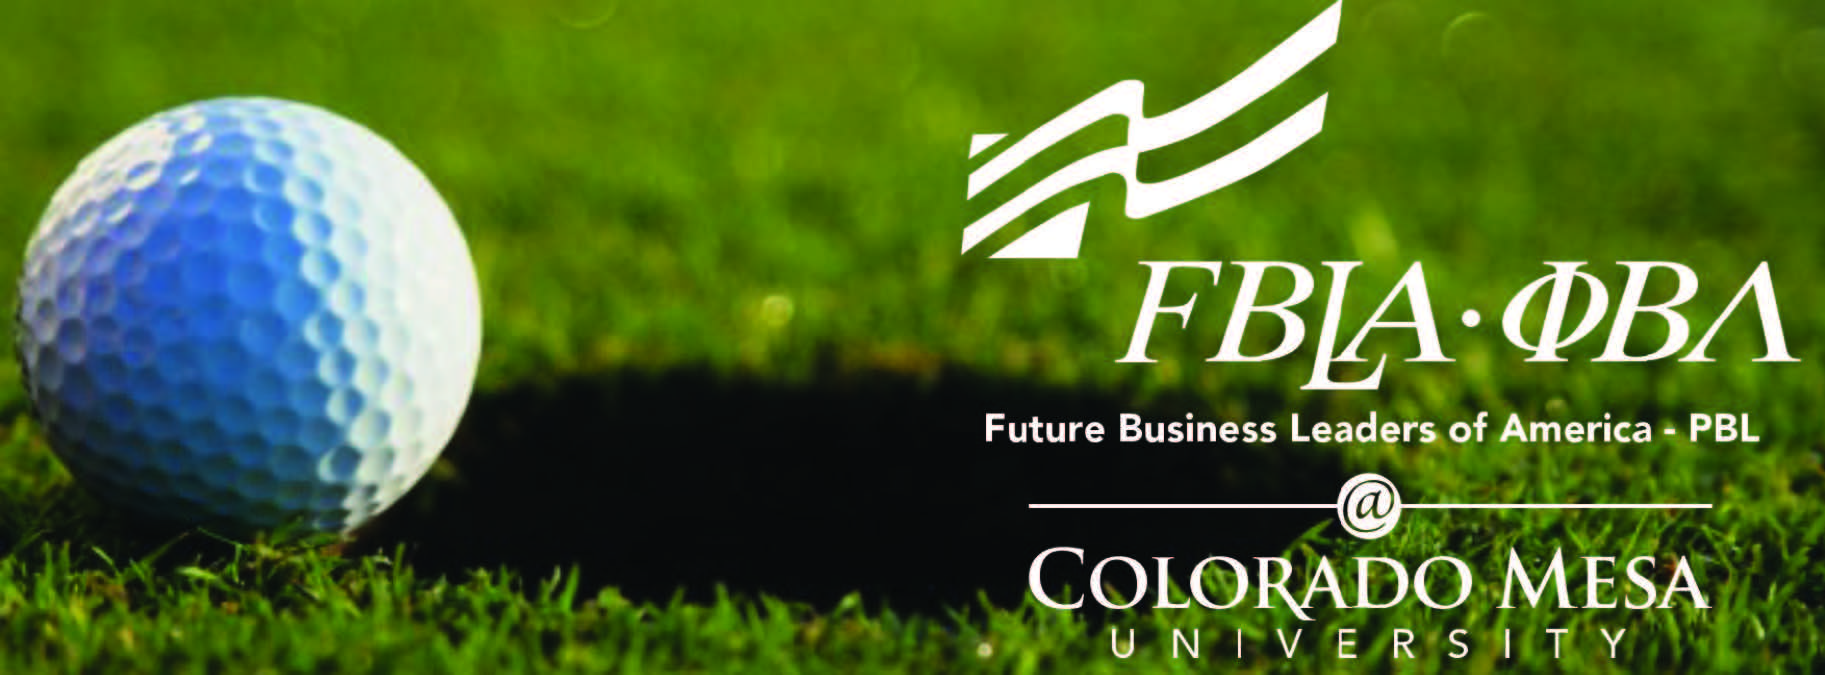 PBL_golf_tourny_email_banner